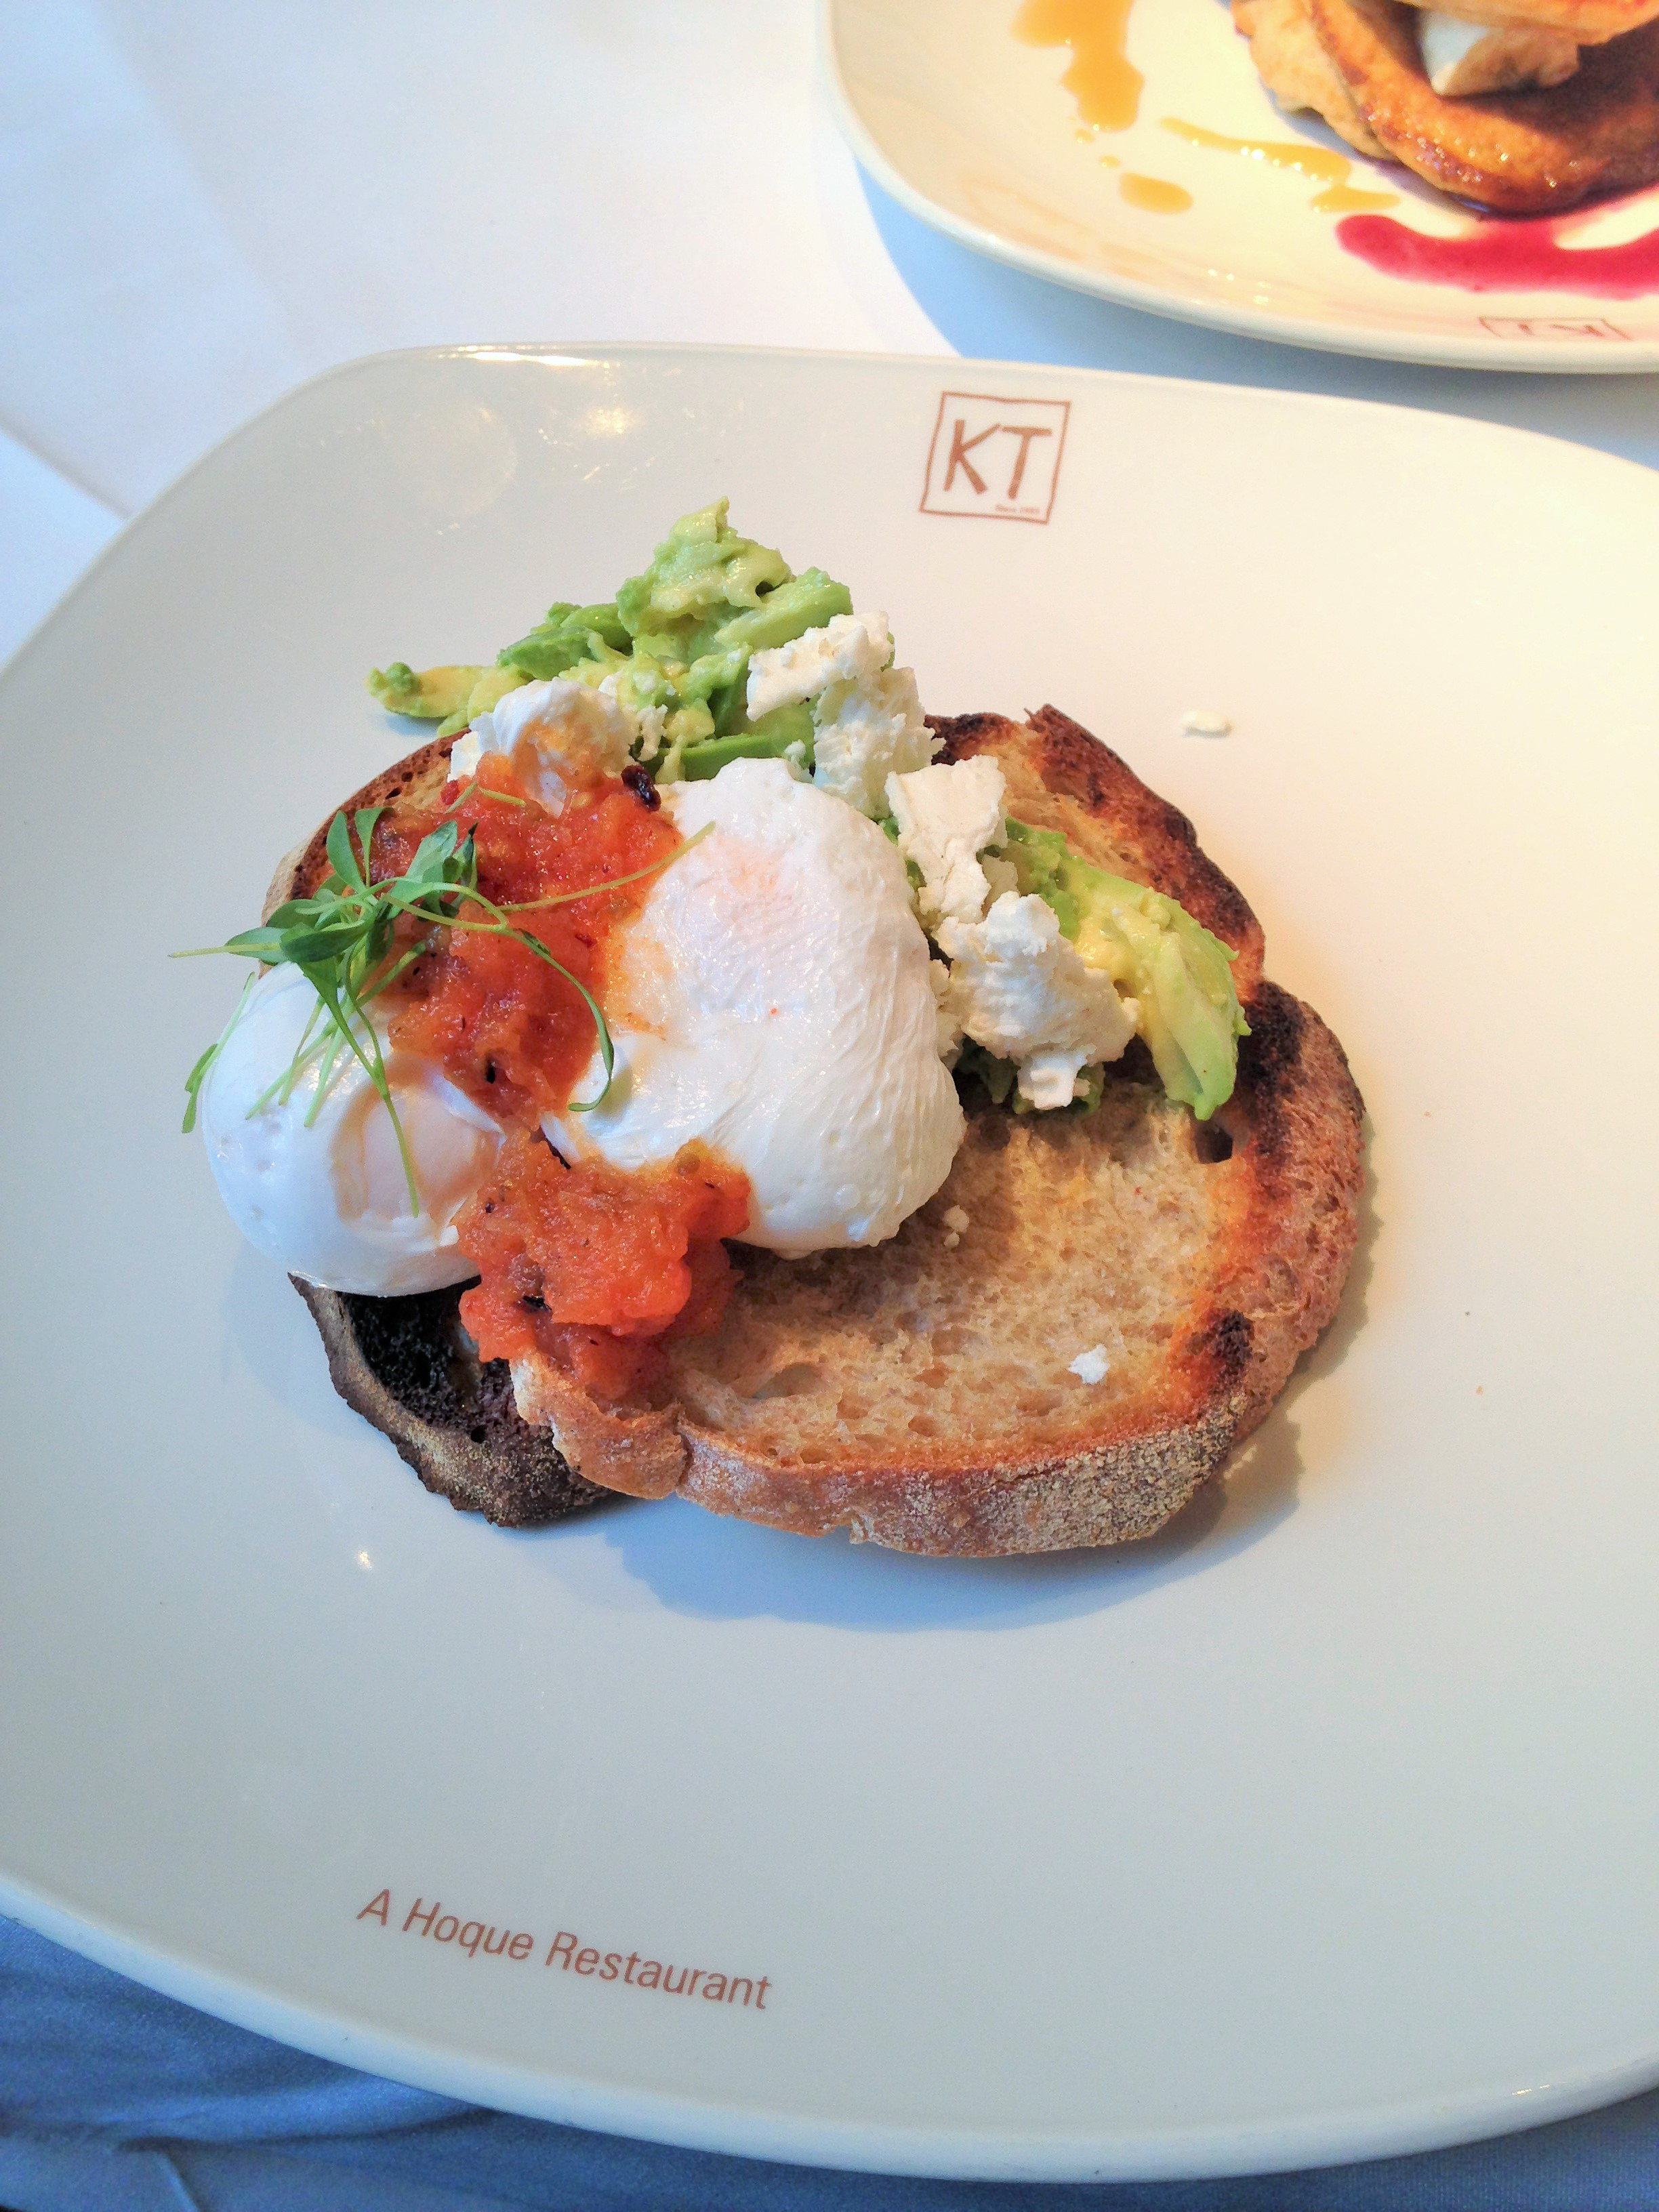 Kennington Tandoori avocado and sourdough toast with poached egg, feta cheese and KT tomato salsa - kenningtonunoff.com